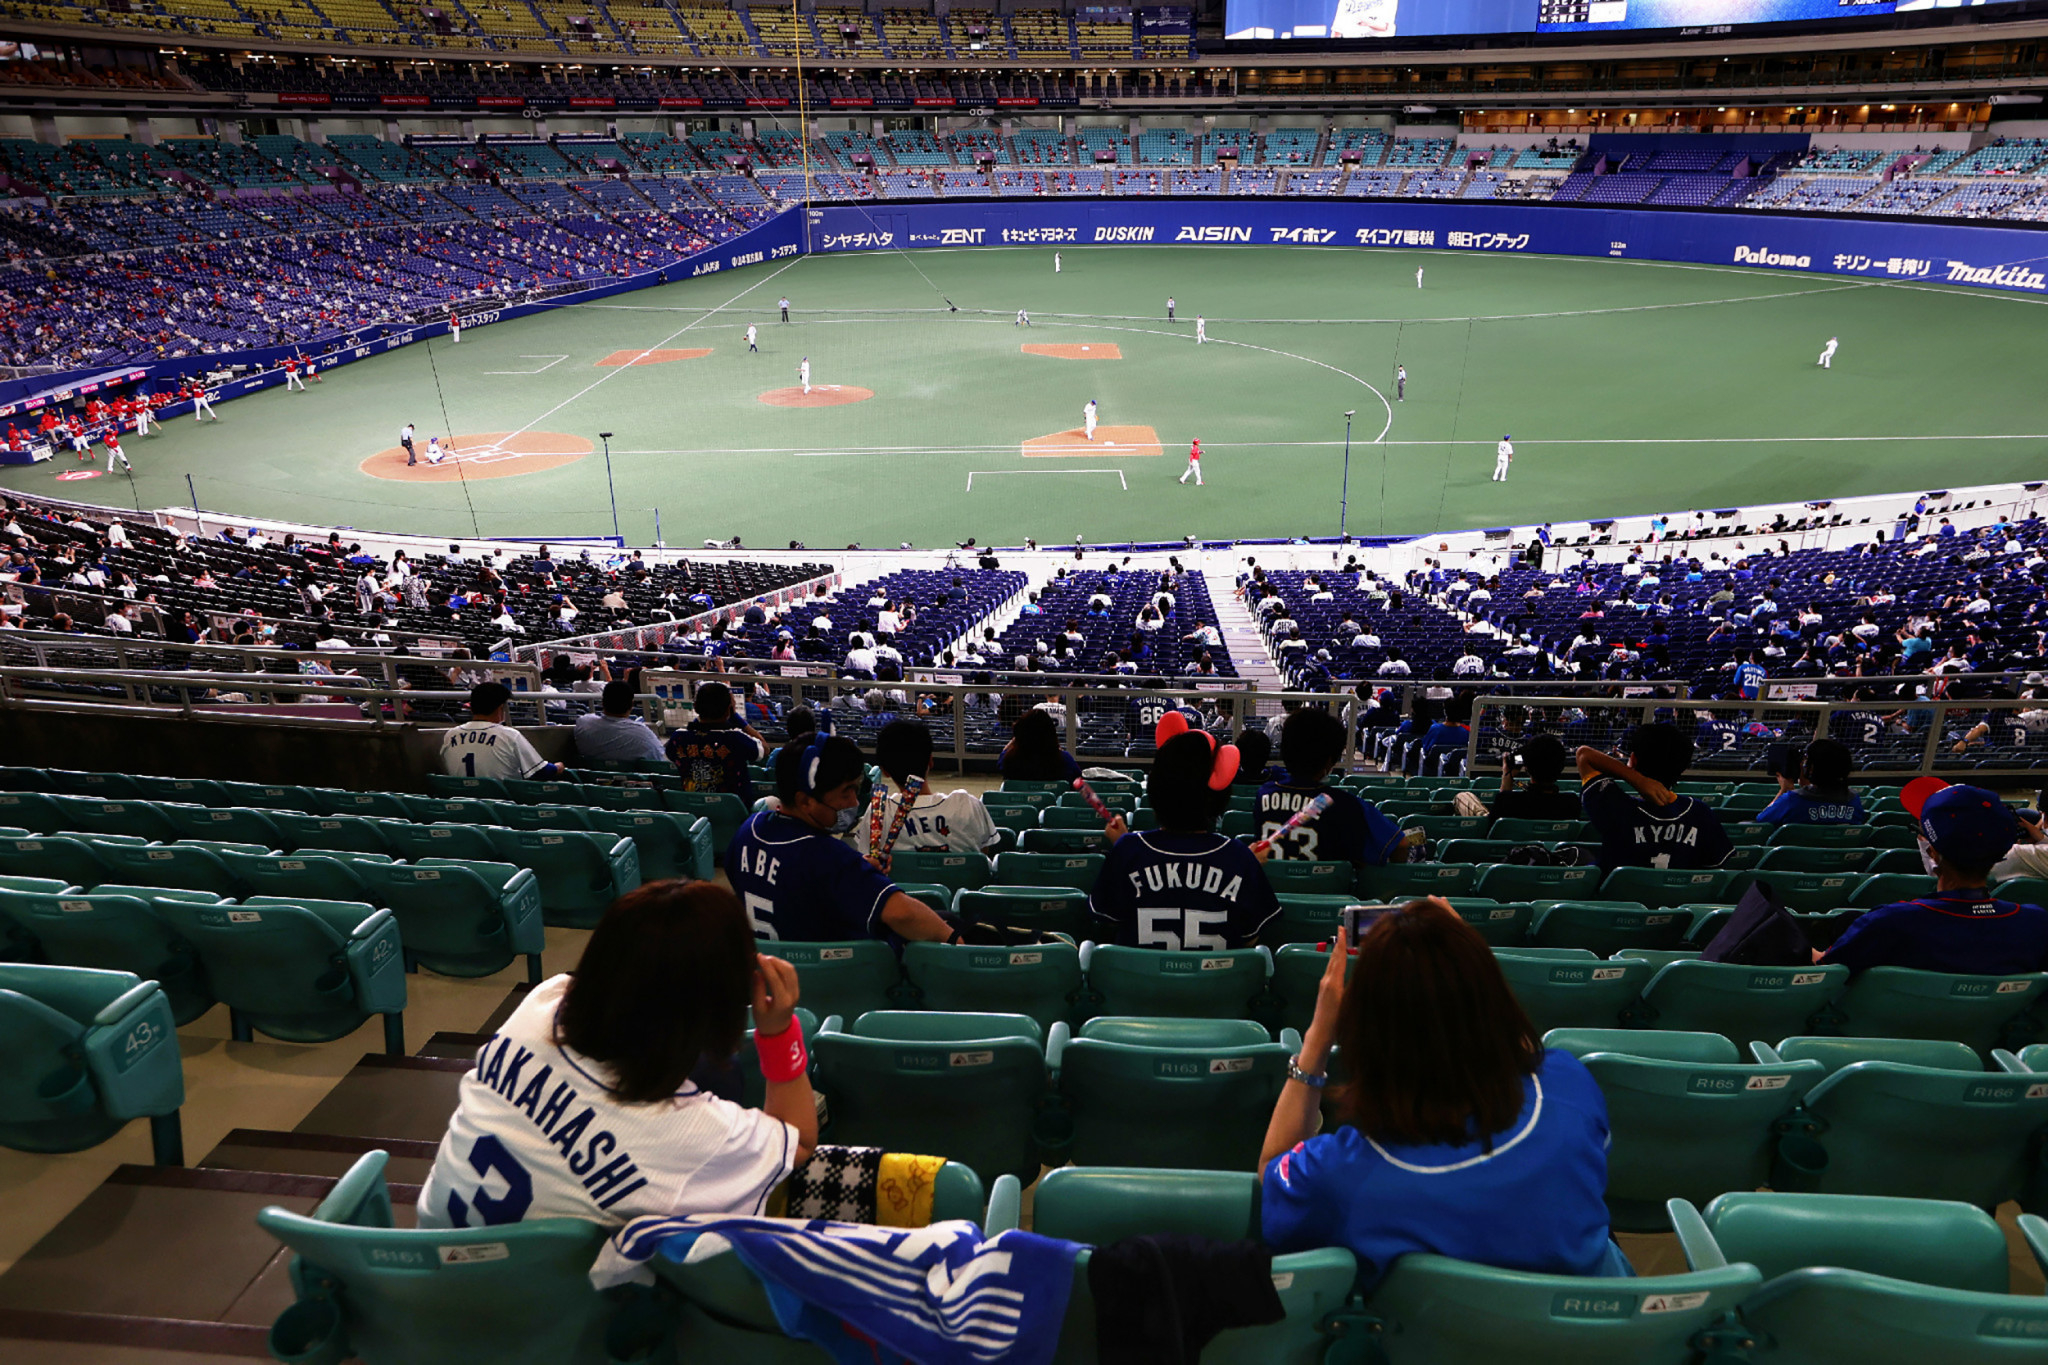 Fans return to stadiums in Japan under precautions as coronavirus cases rise